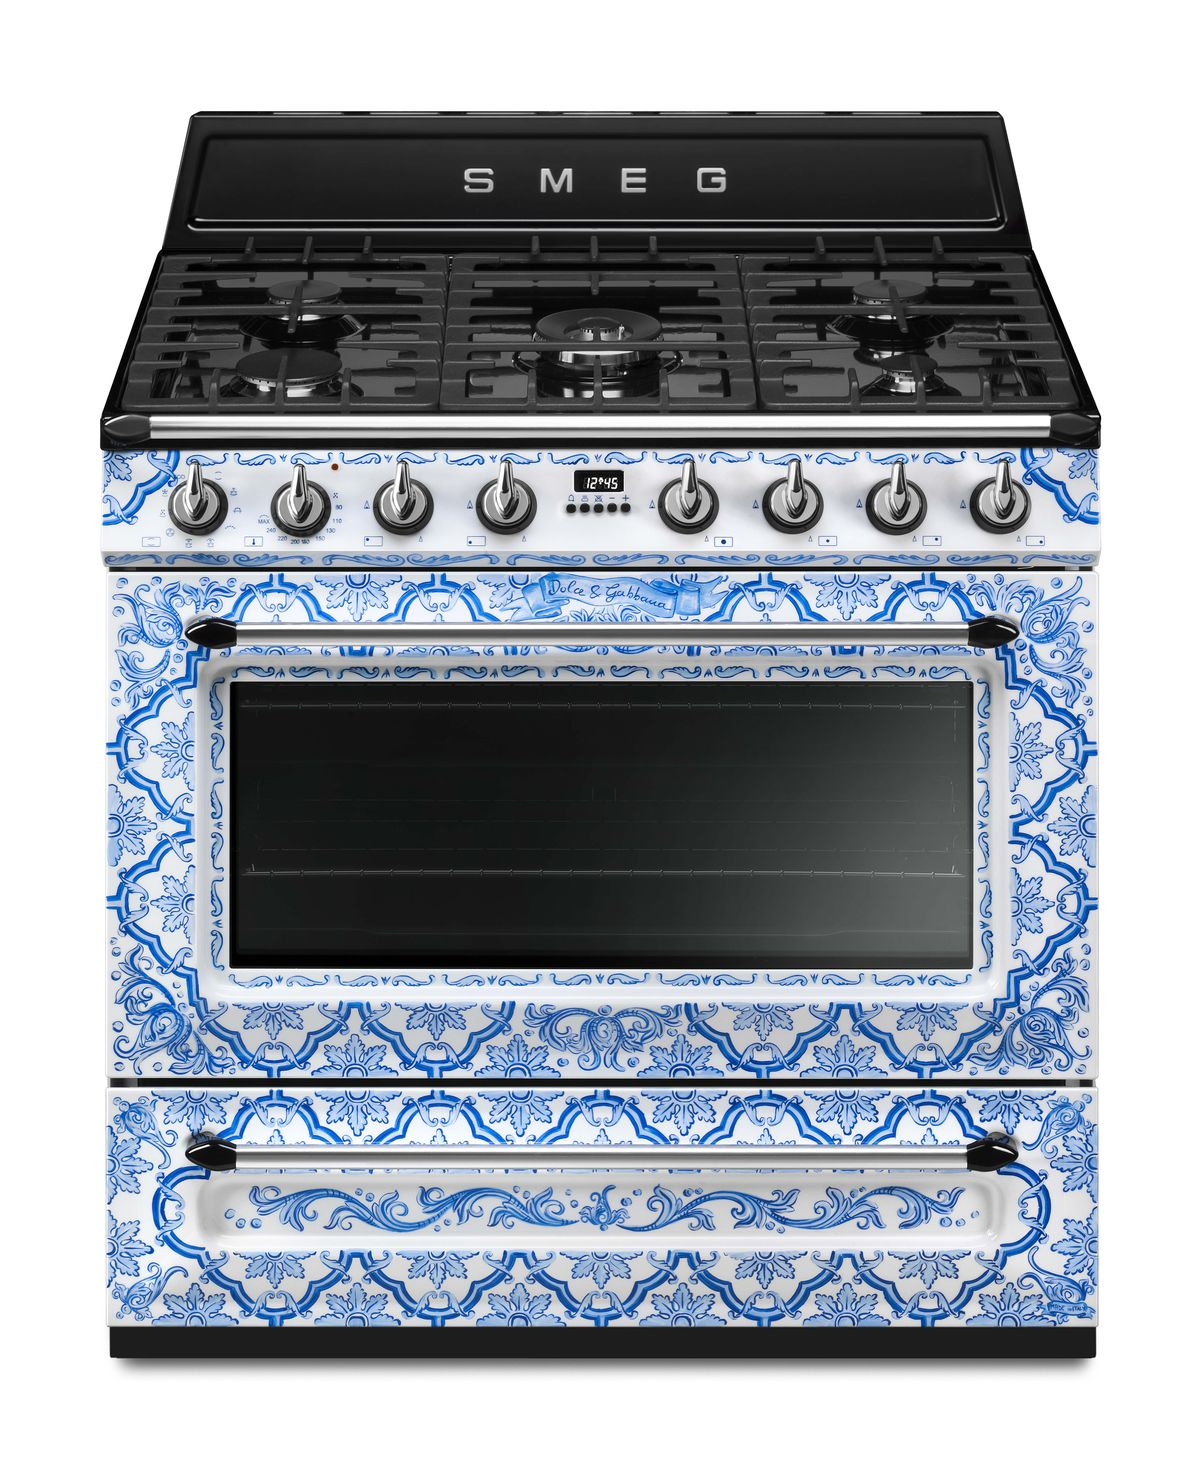 Dolce & Gabbana for Smeg kitchen appliances expands again - Curbed